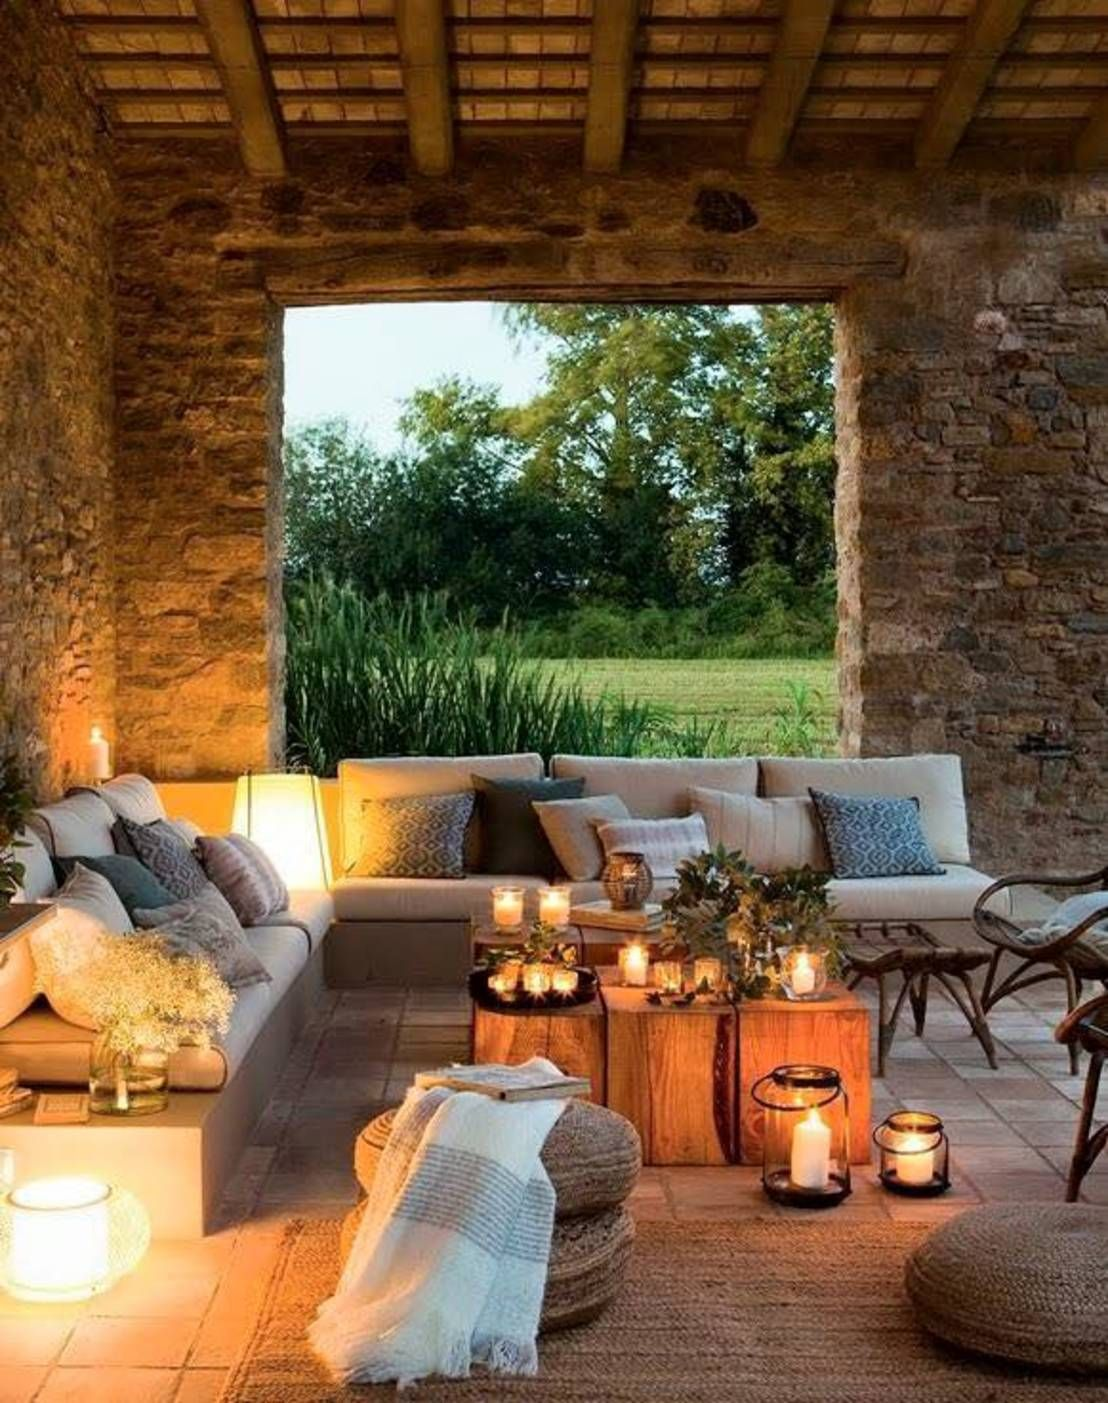 10 sitting areas that make the garden more beautiful